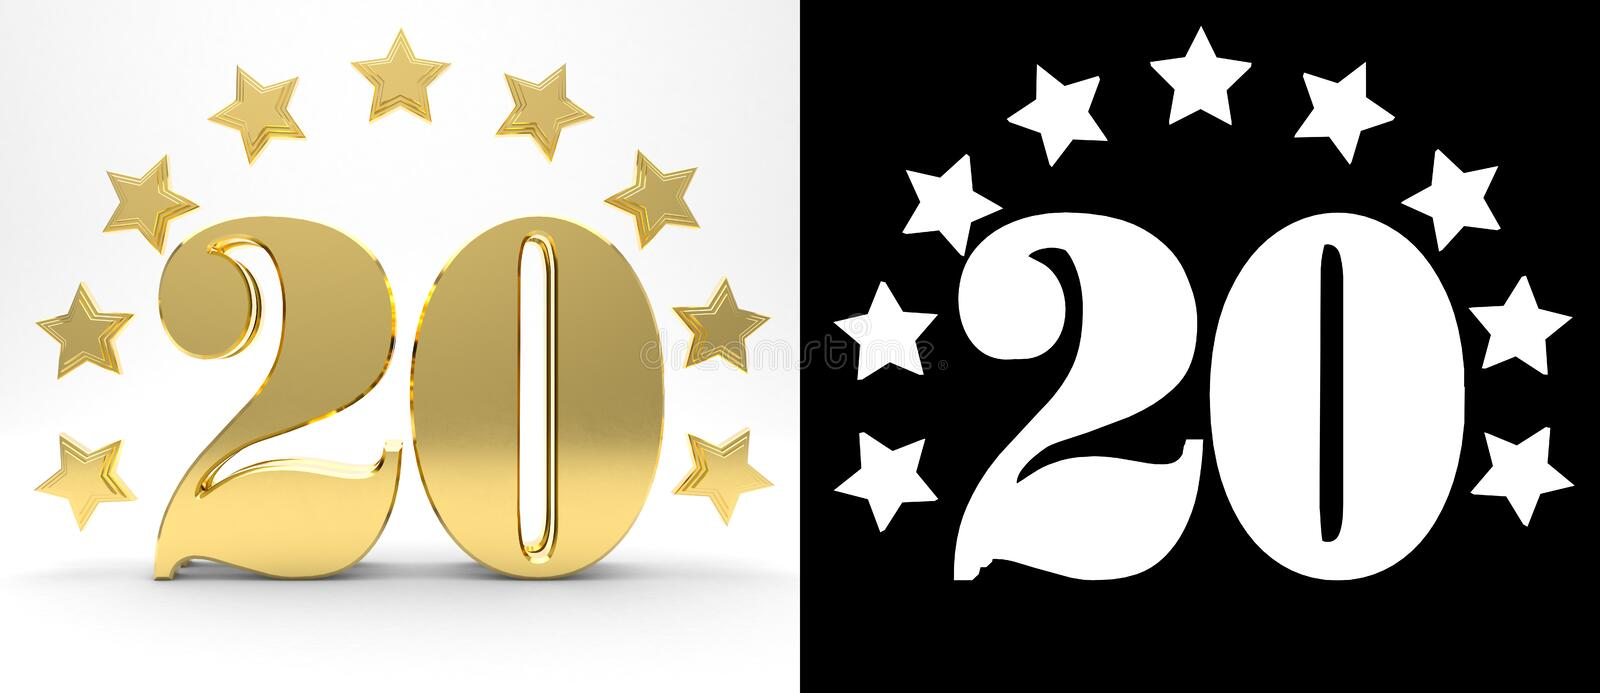 Golden number twenty on white background with drop shadow and alpha channel , decorated with a circle of stars. 3D illustration royalty free illustration